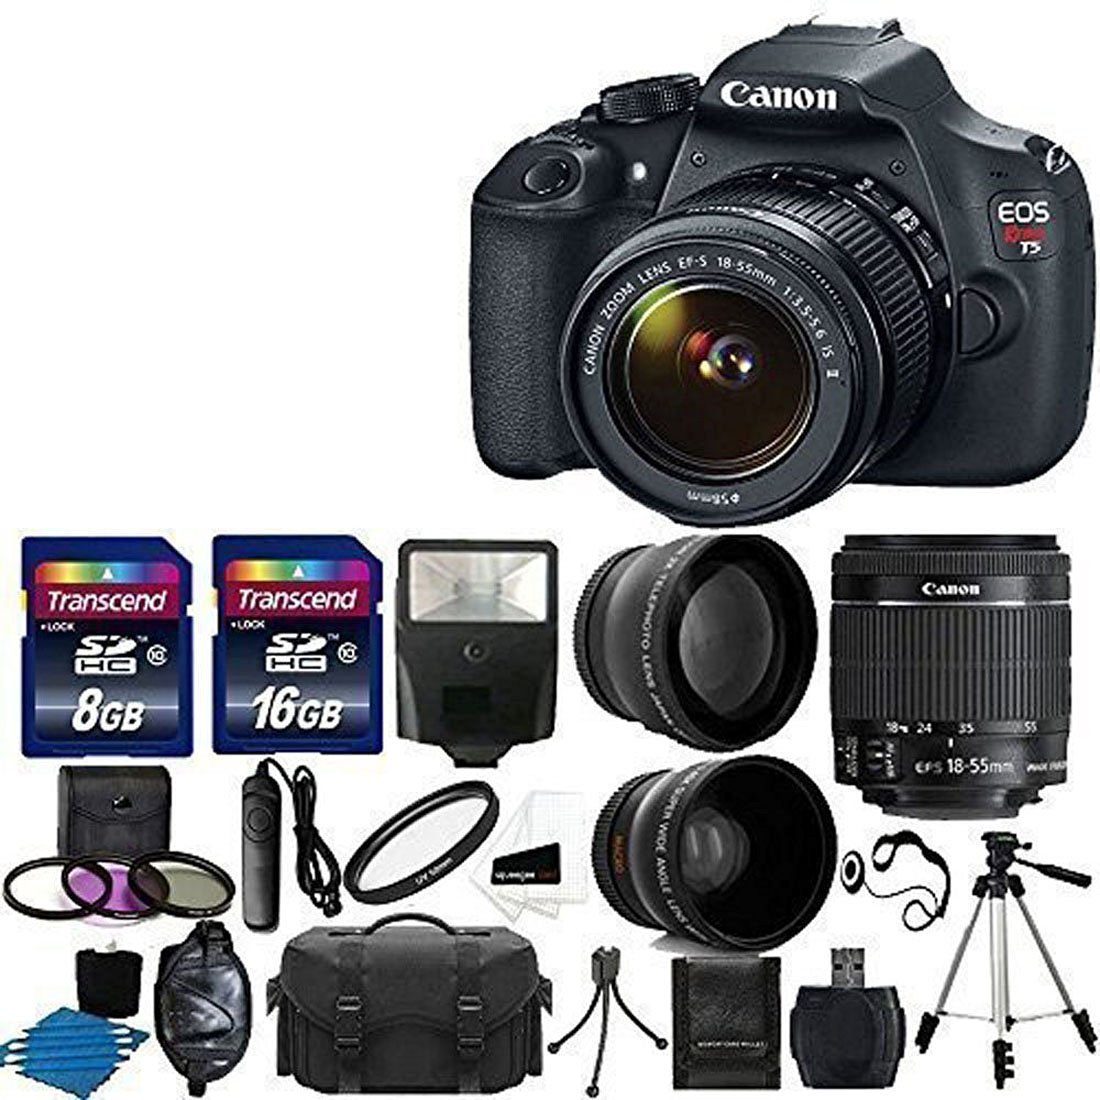 Camera Dslr Camera Info canon eos rebel t5 dslr digital camera ultimate package info ef s 18 55mm f3 5 6 is lens 2x telephoto 58mm wide angle flash 5